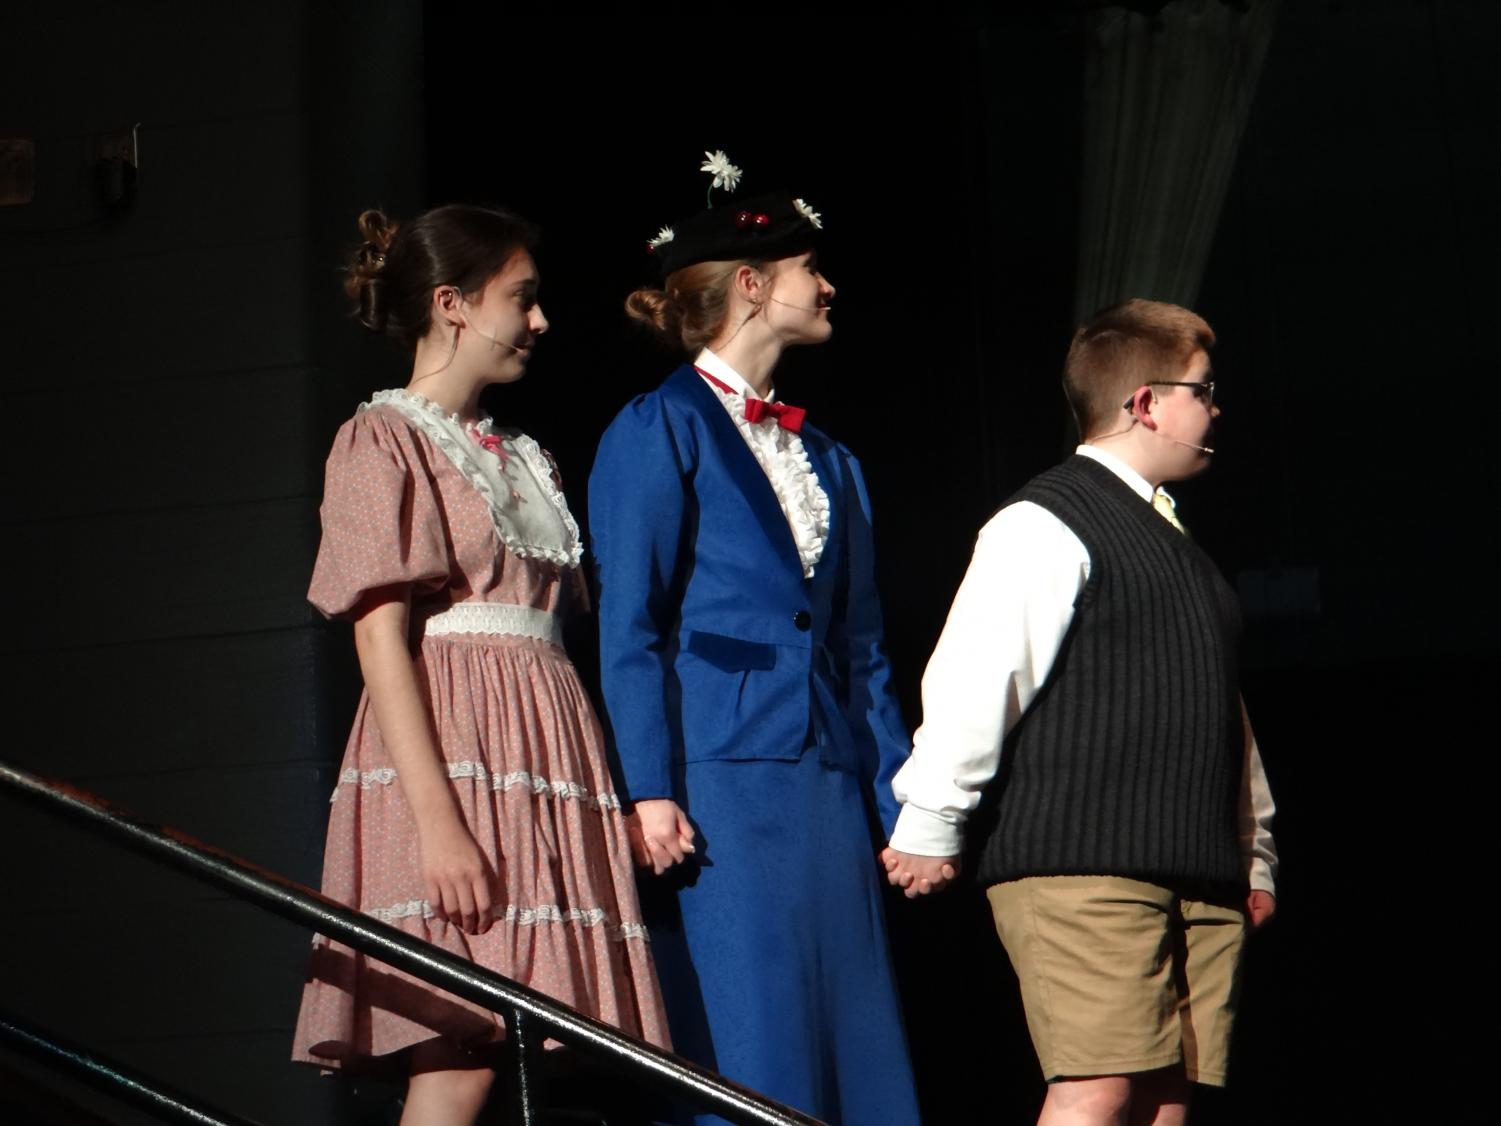 Hard at work preparing to bring Mary Poppins to life, the cast of the Millbrook High production rehearse their various songs and scenes. Make sure to come out and see the show live April 19-21!